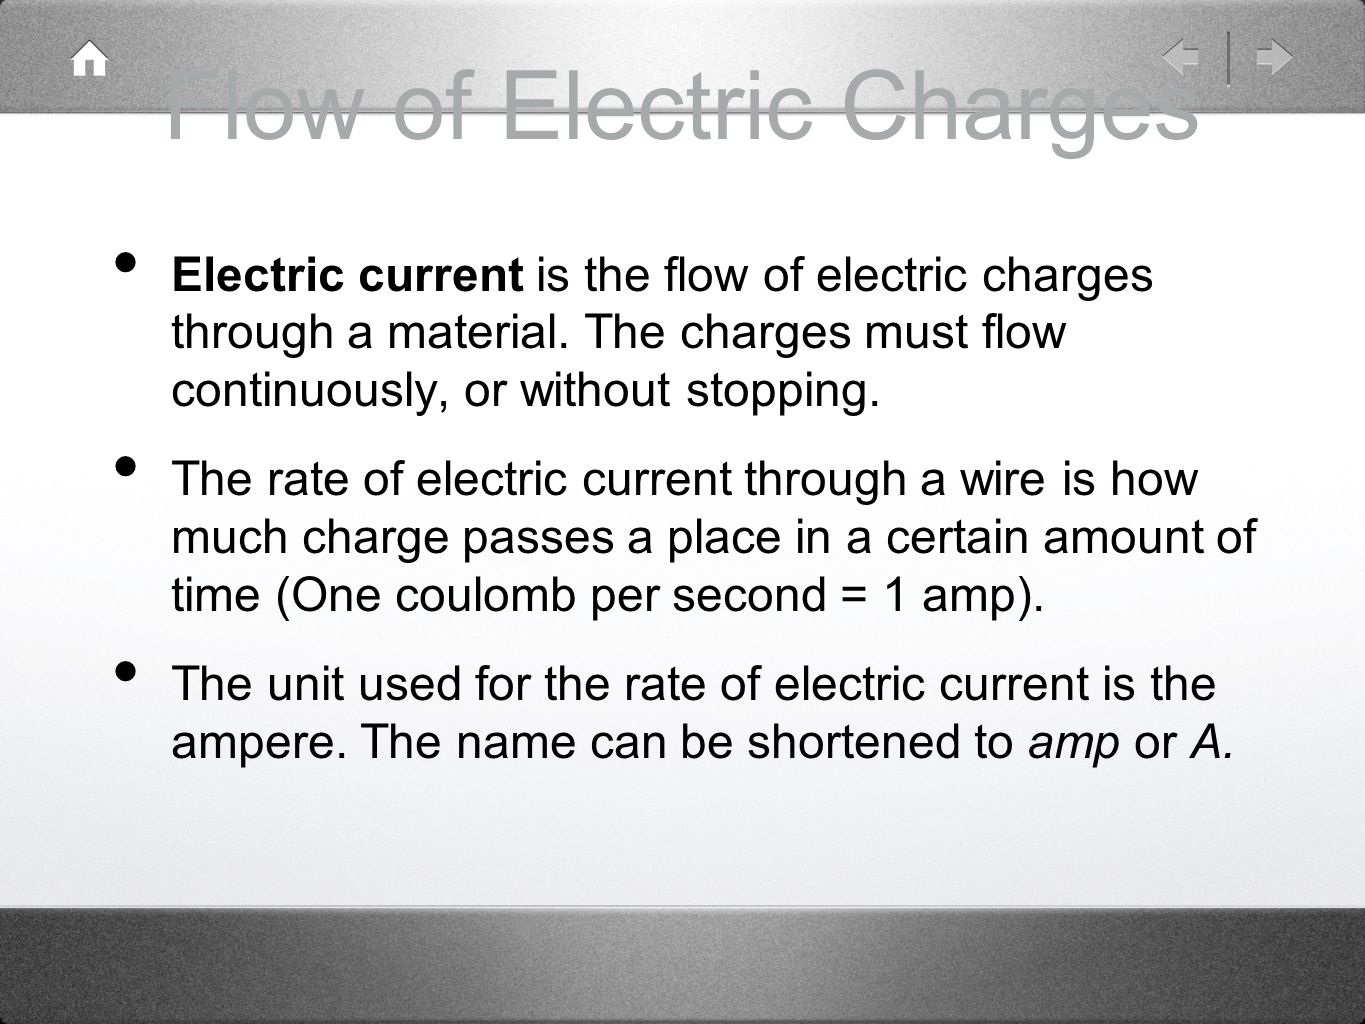 Flow of Electric Charges